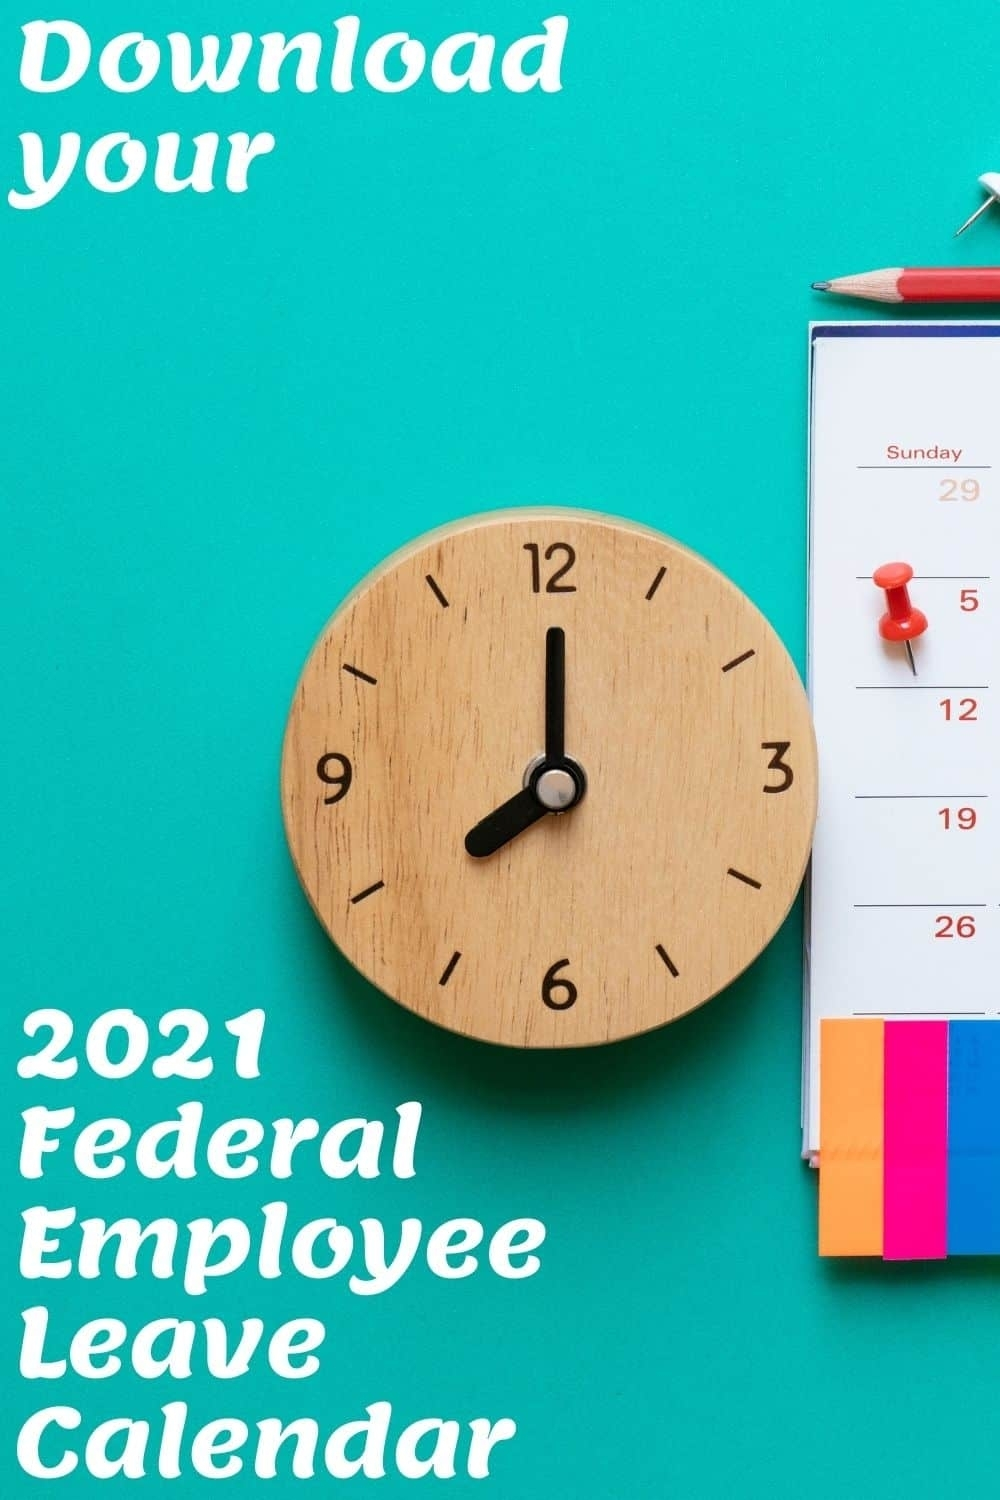 2021 Federal Employee Leave Calendar: Maximize Your Valuable